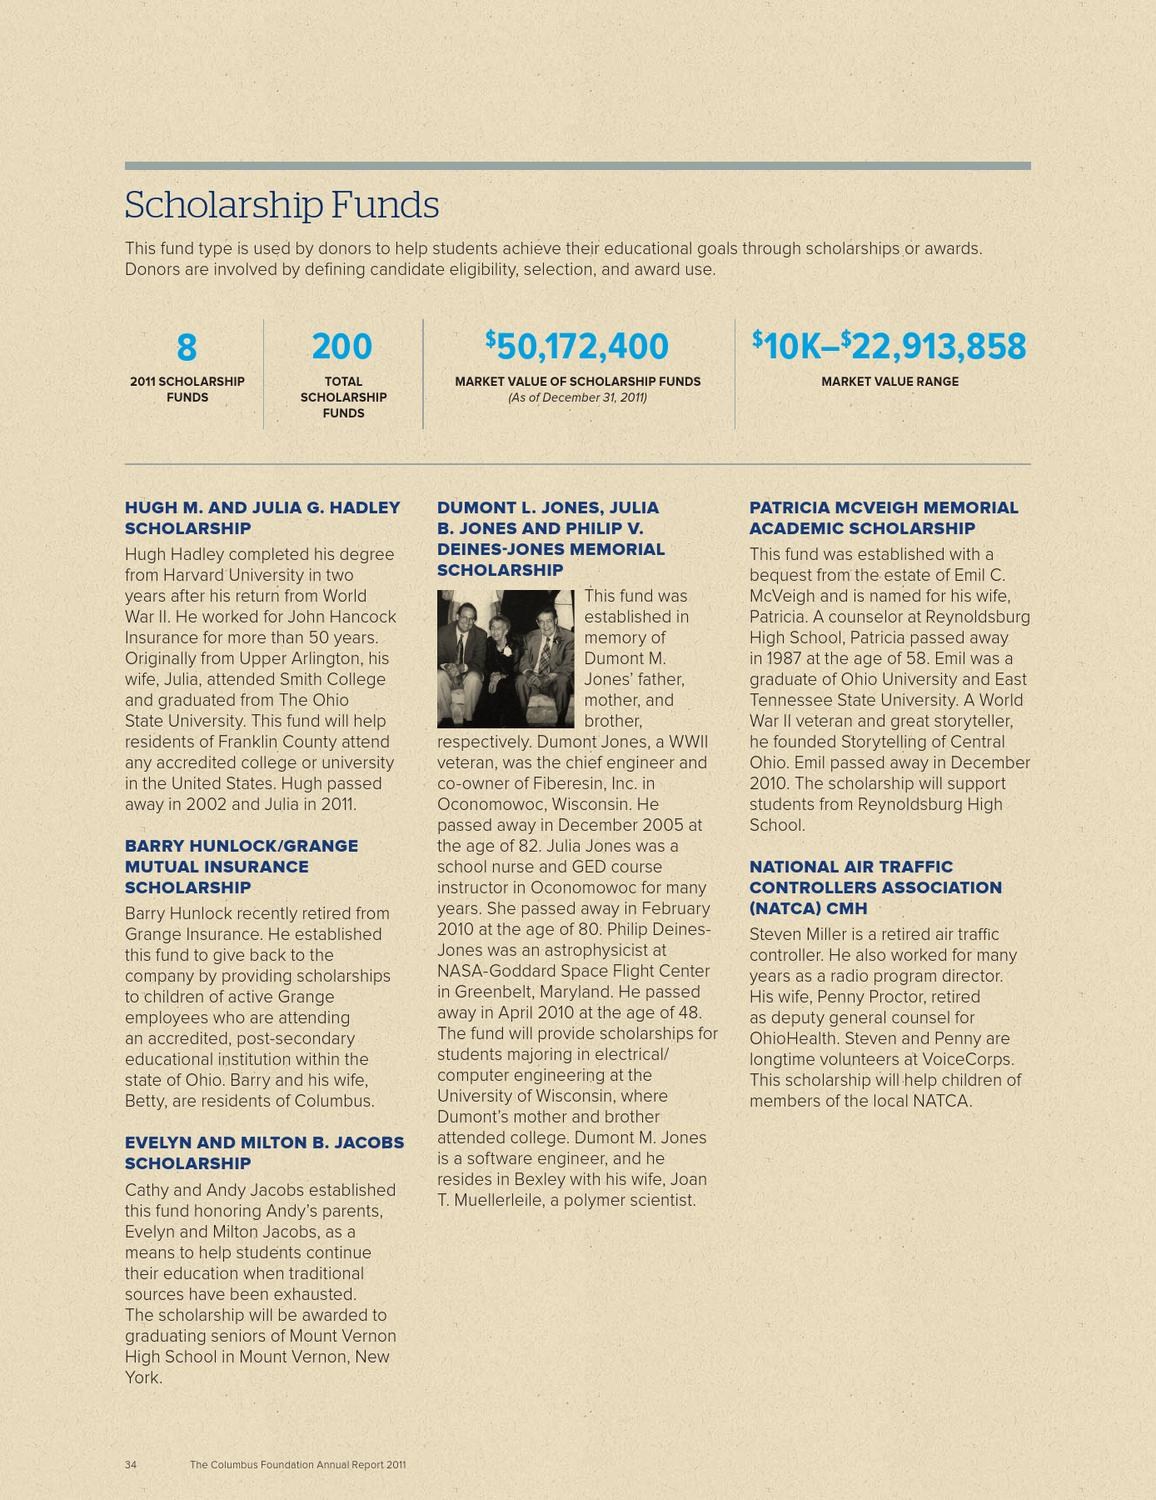 The Columbus Foundation 2011 Annual Report by The Columbus